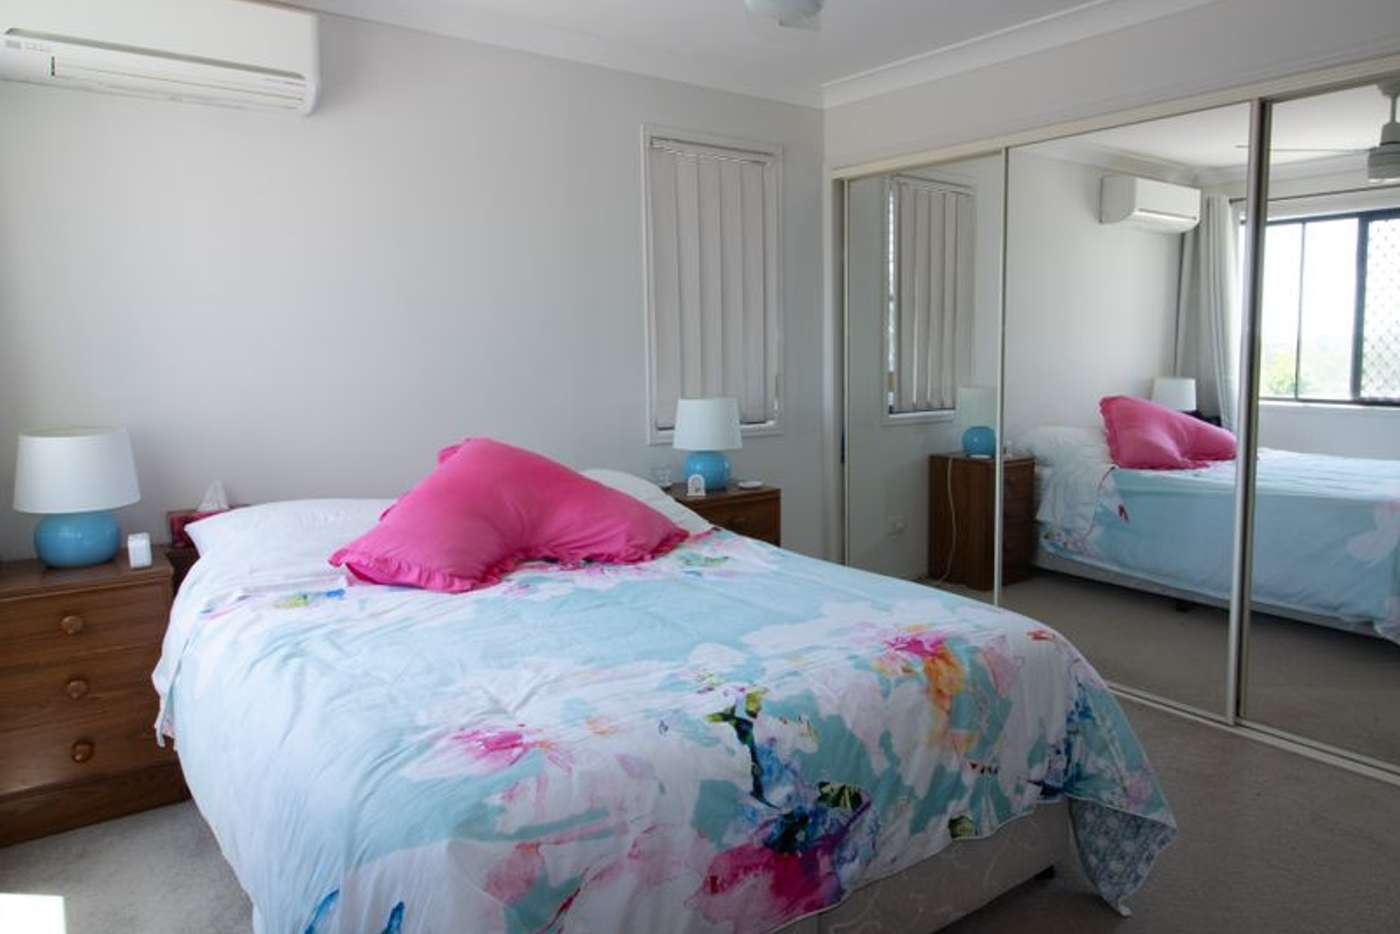 Fifth view of Homely townhouse listing, Unit 44/11 Federation St, Wynnum West QLD 4178